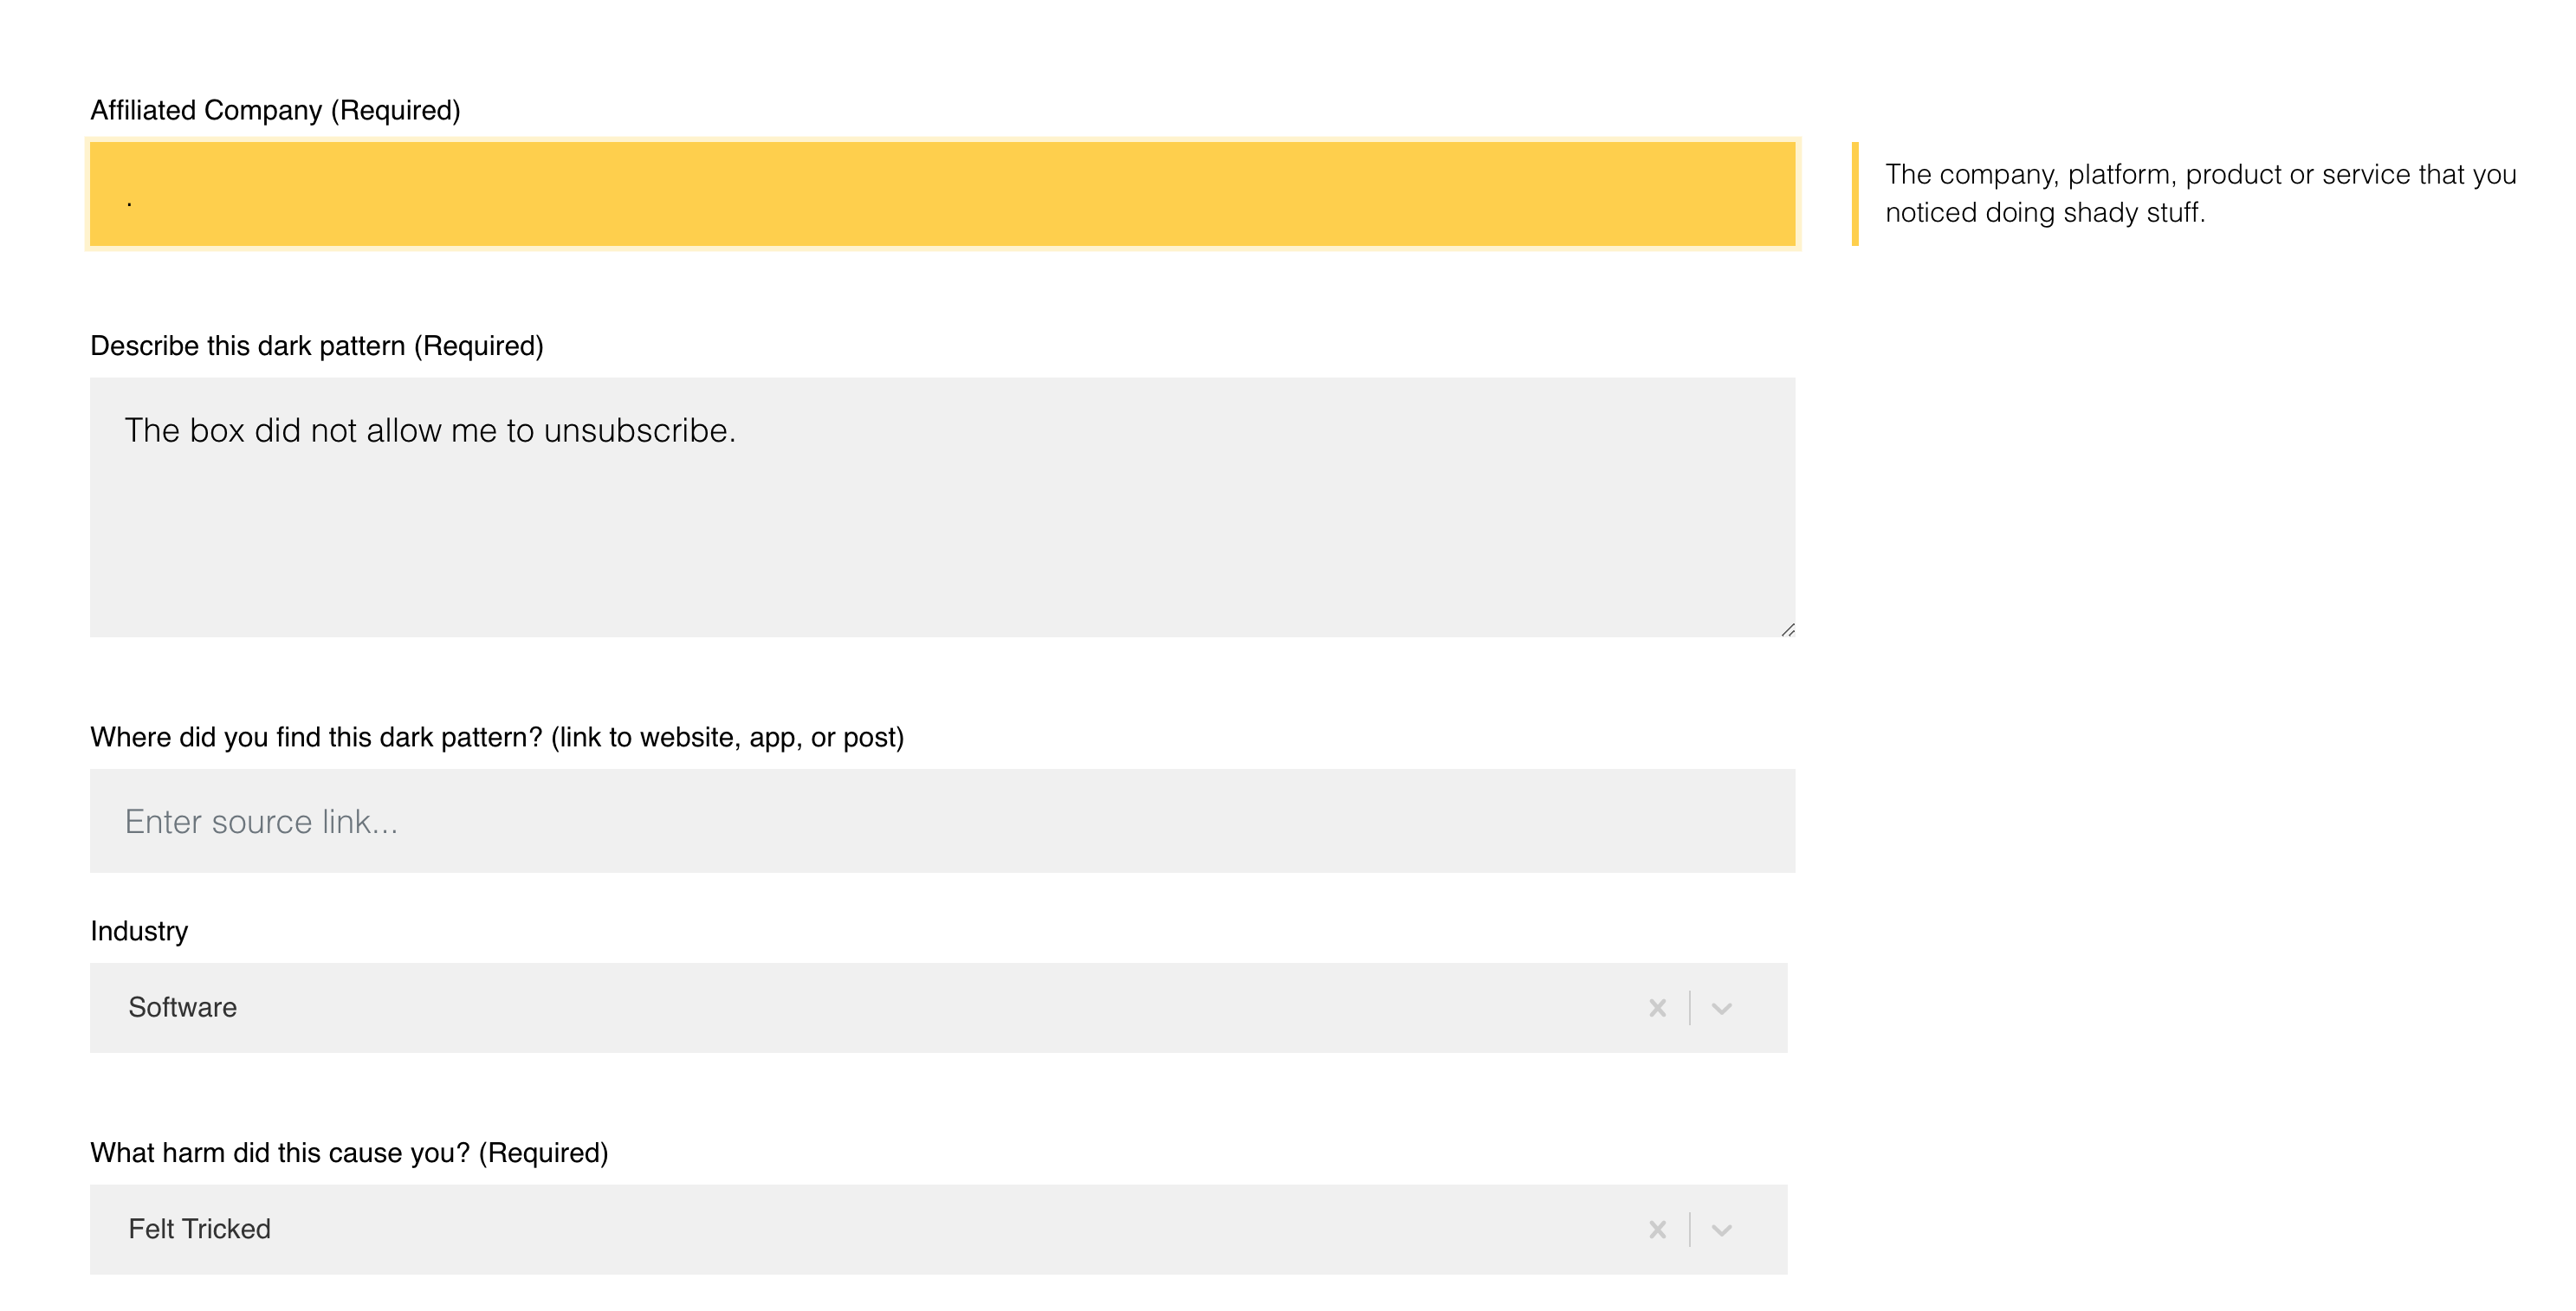 """""""The box did not allow me to unsubscribe"""" and the category """"felt tricked"""" selected."""